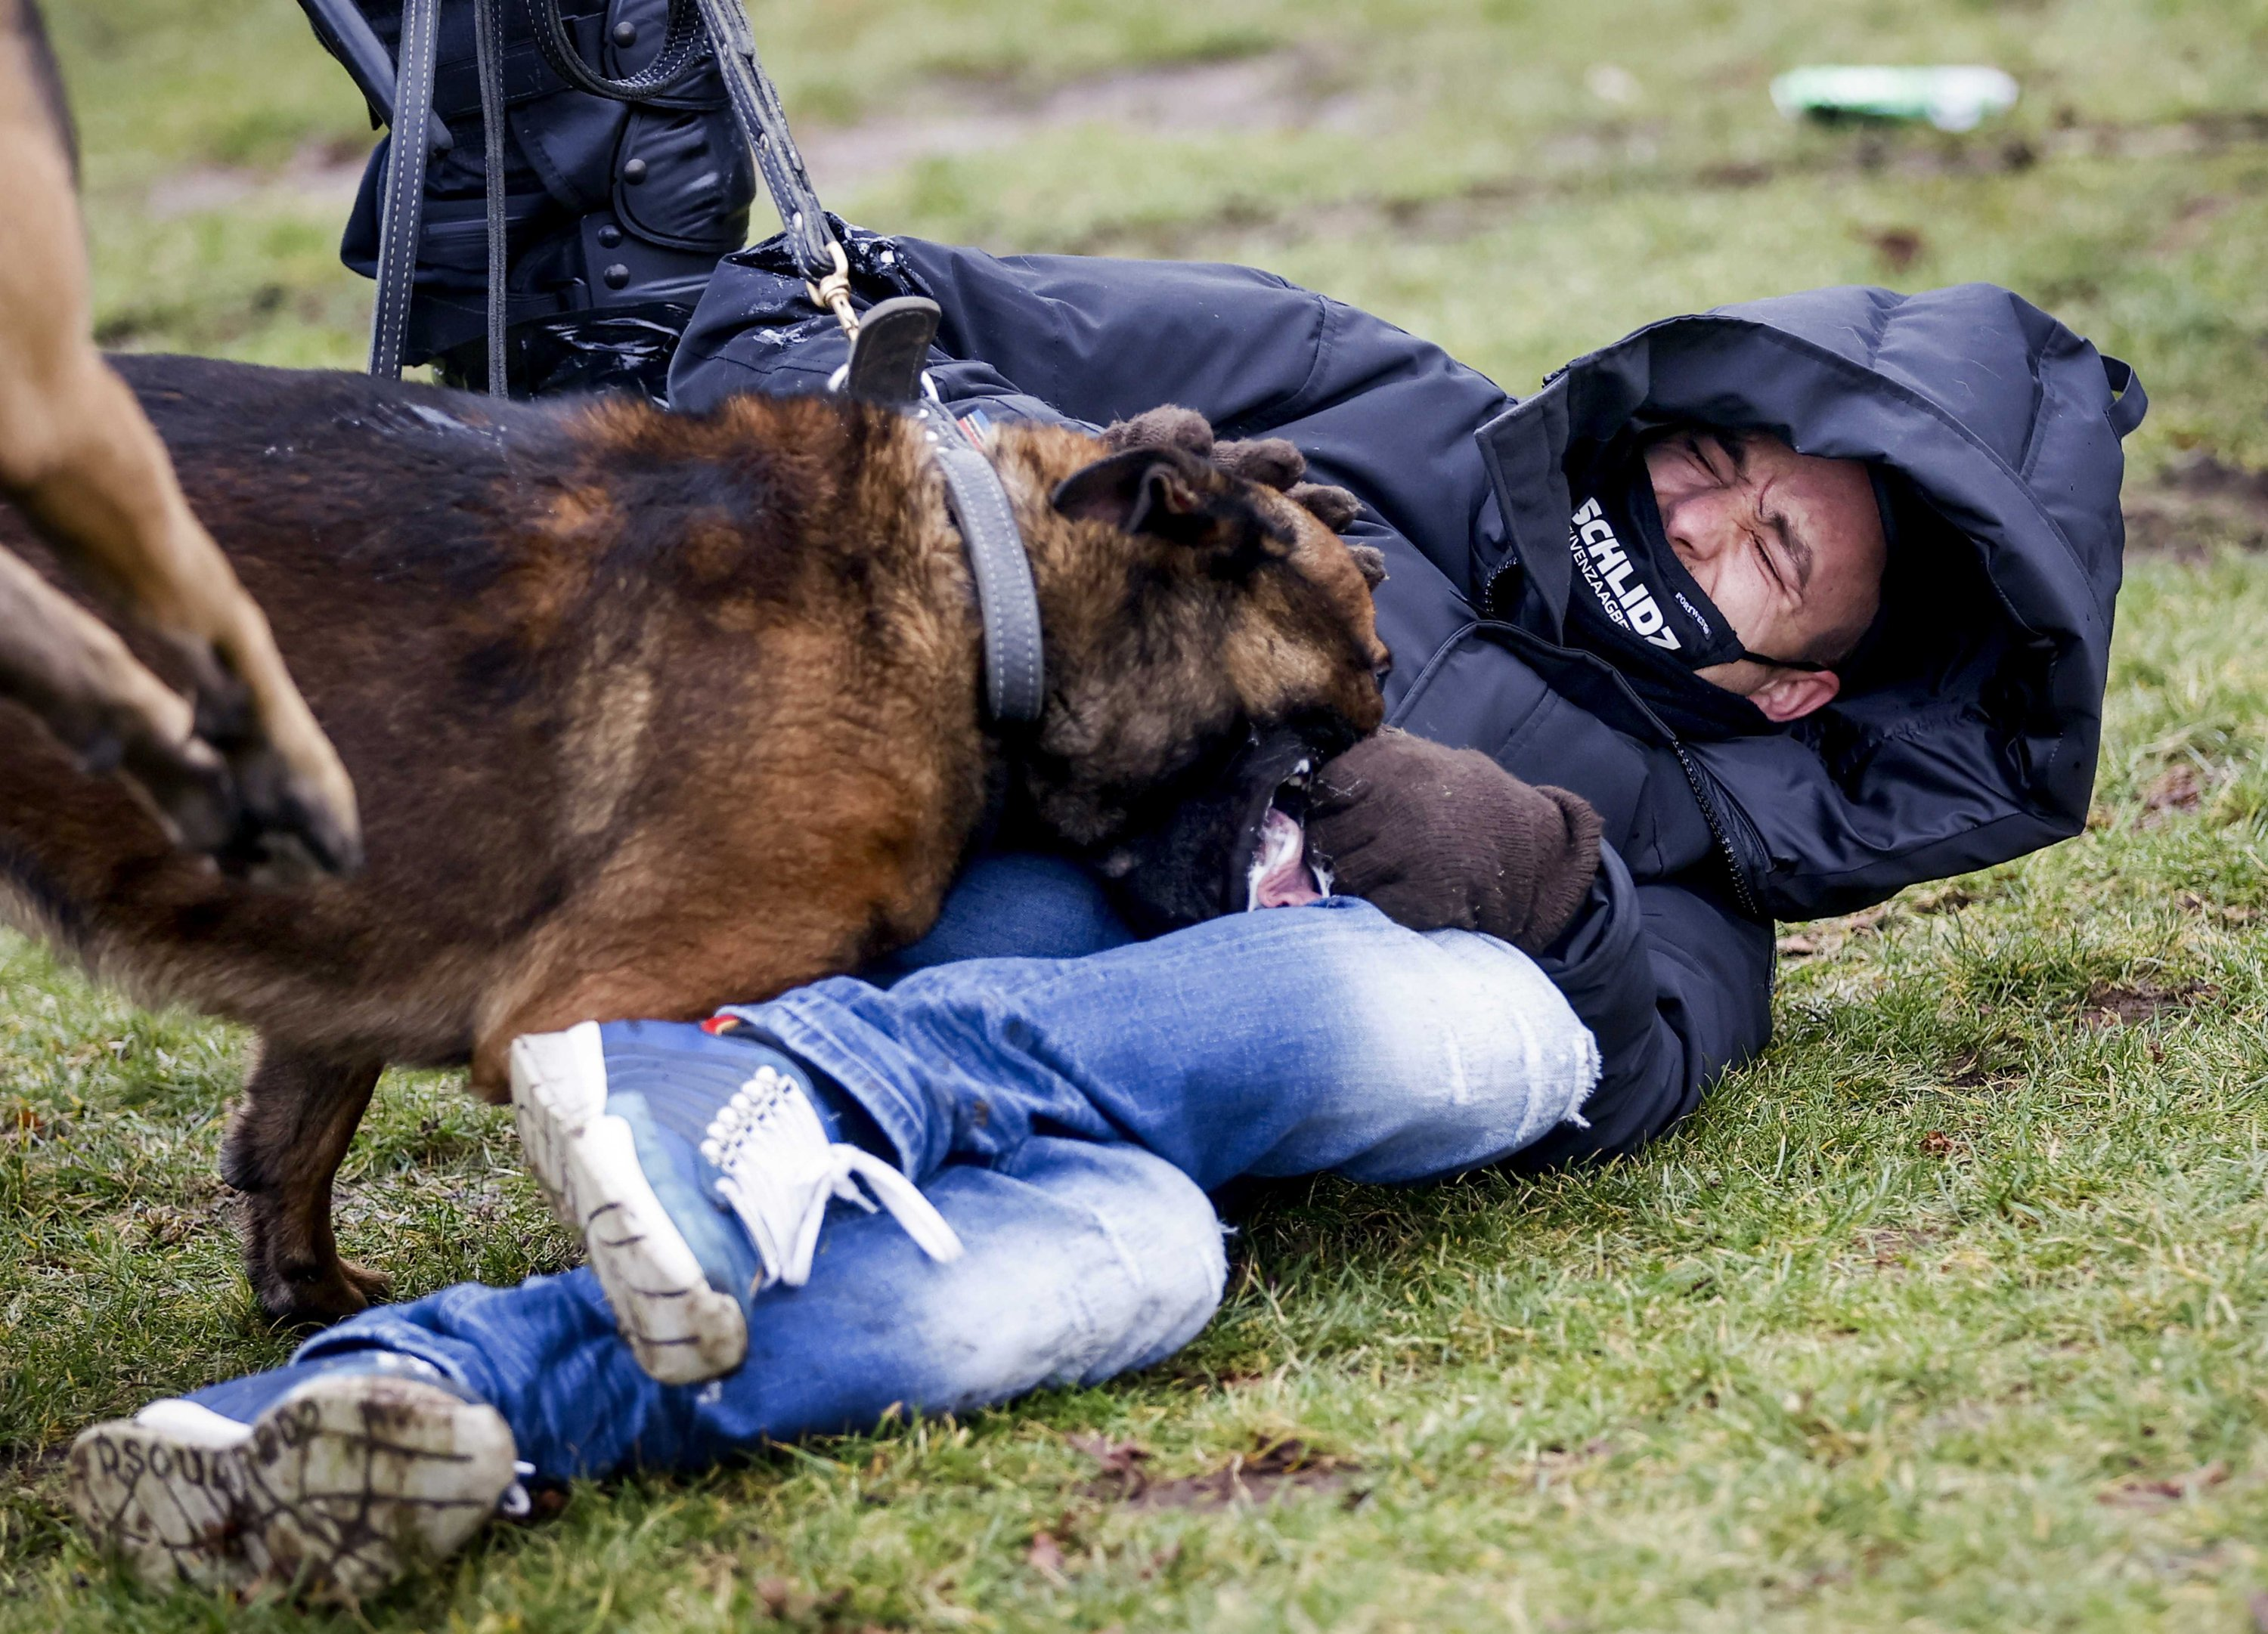 A demonstrator is attacked by a dog on the Museumplein, where the police broke up a demonstration against the current coronavirus measures, in Amsterdam, the Netherlands, Jan. 24, 2021. (EPA Photo)